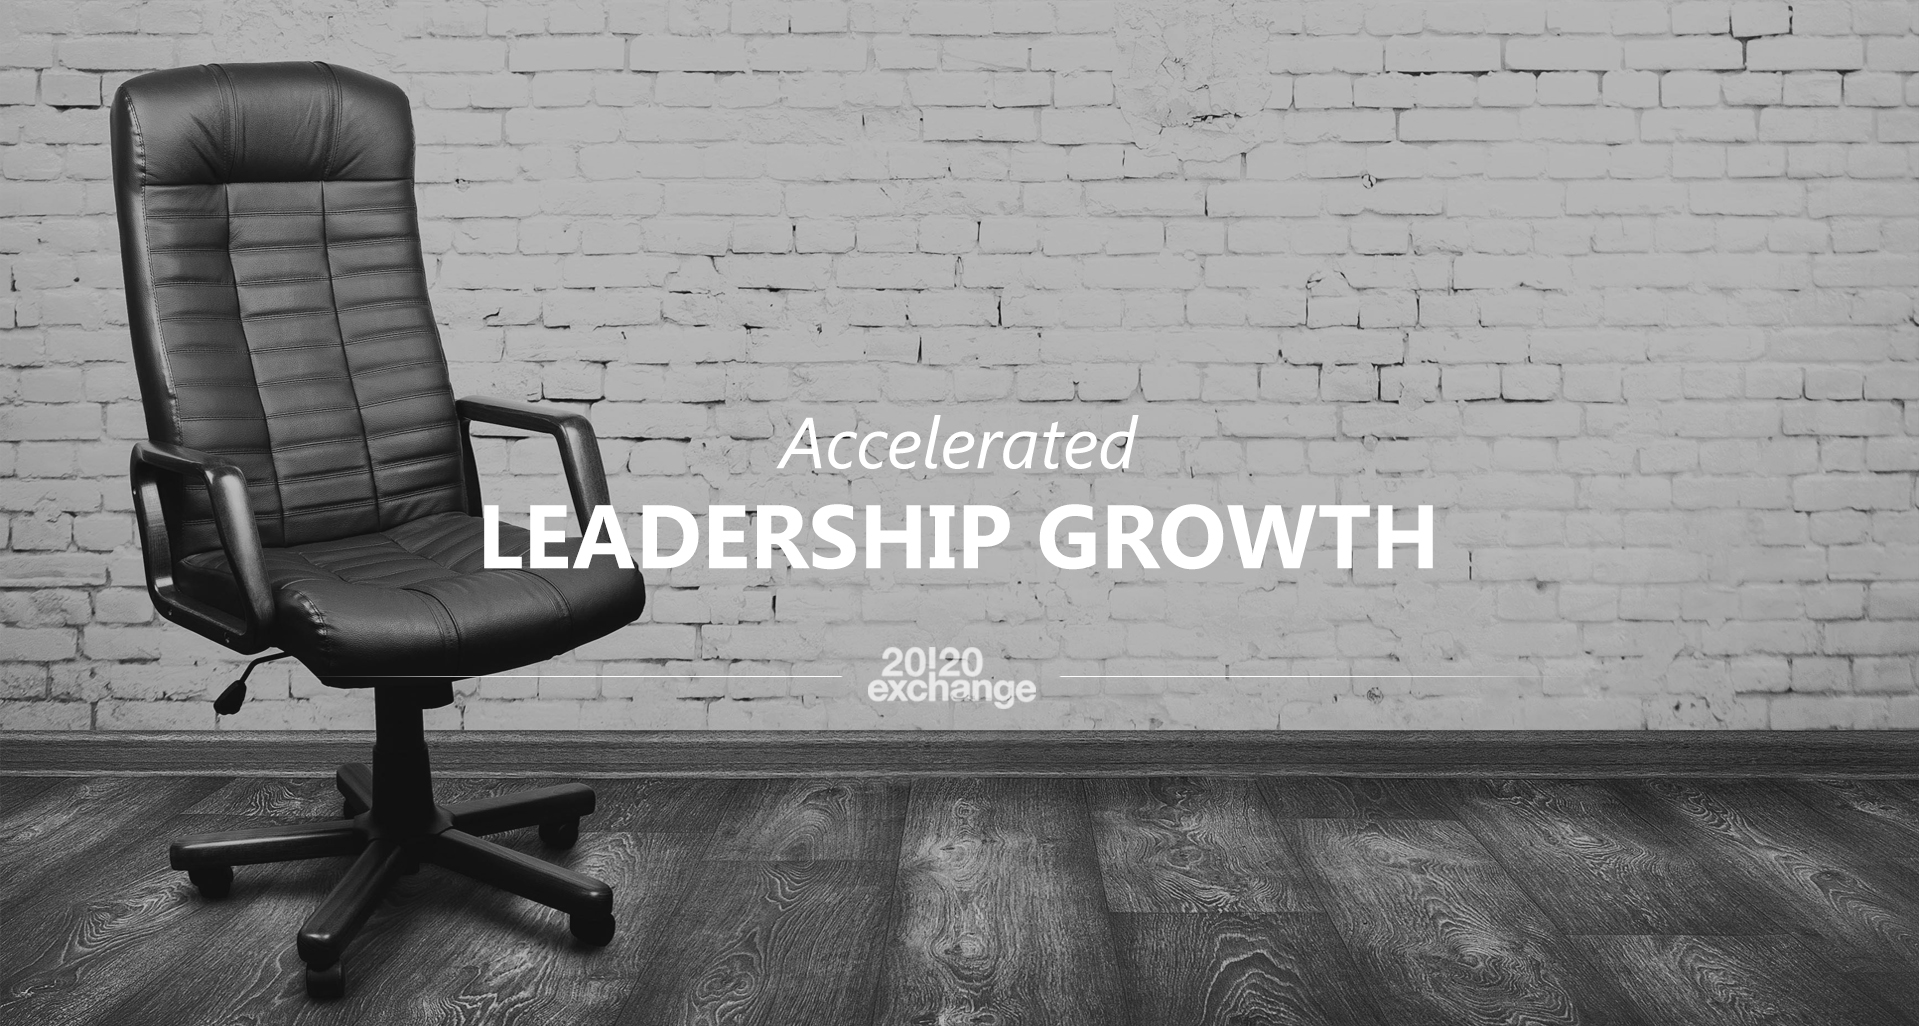 2020 Exchange - accelerated leadership growth